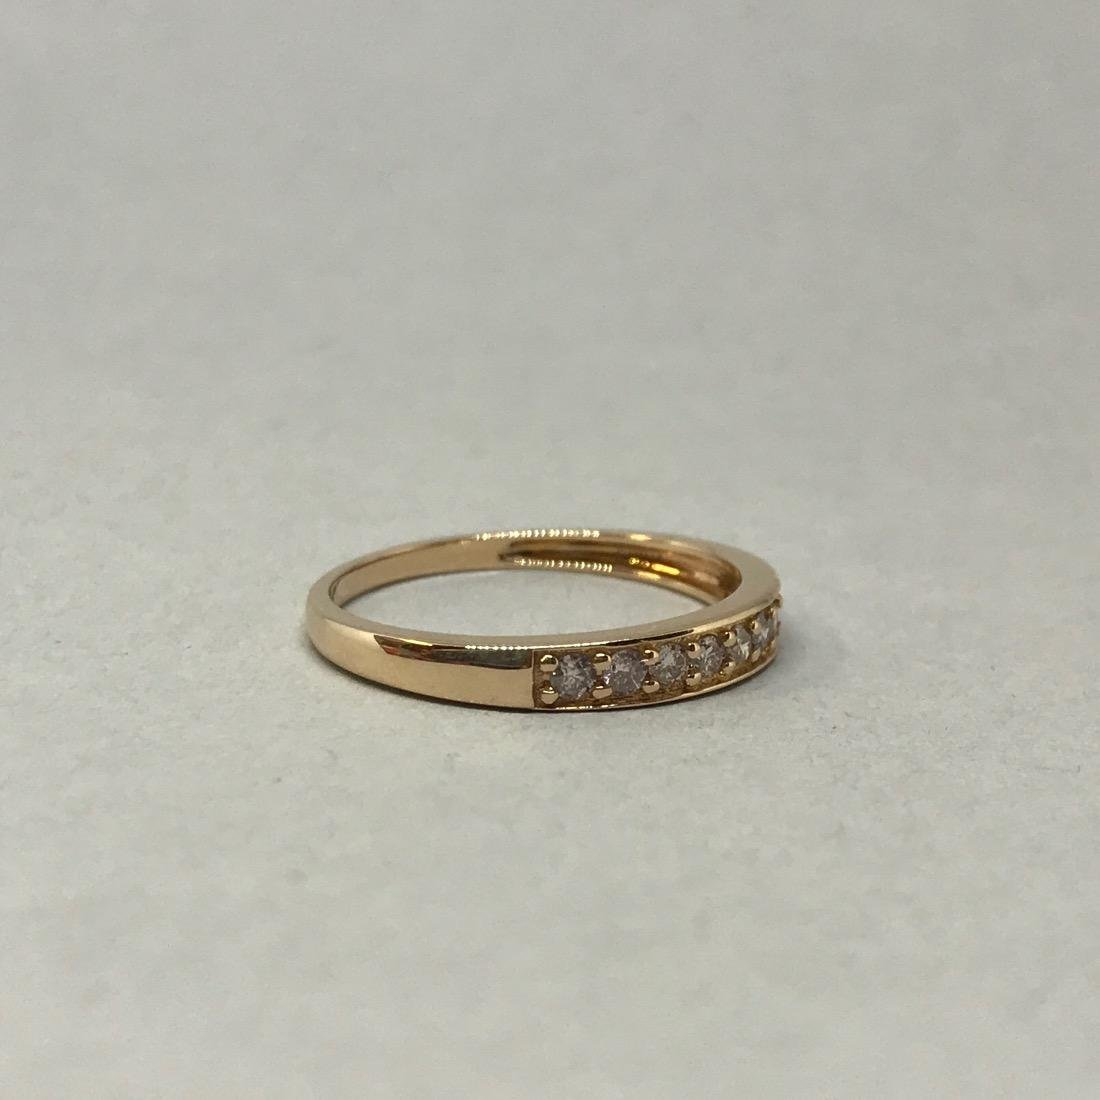 10K Gold Band with Diamonds - 2